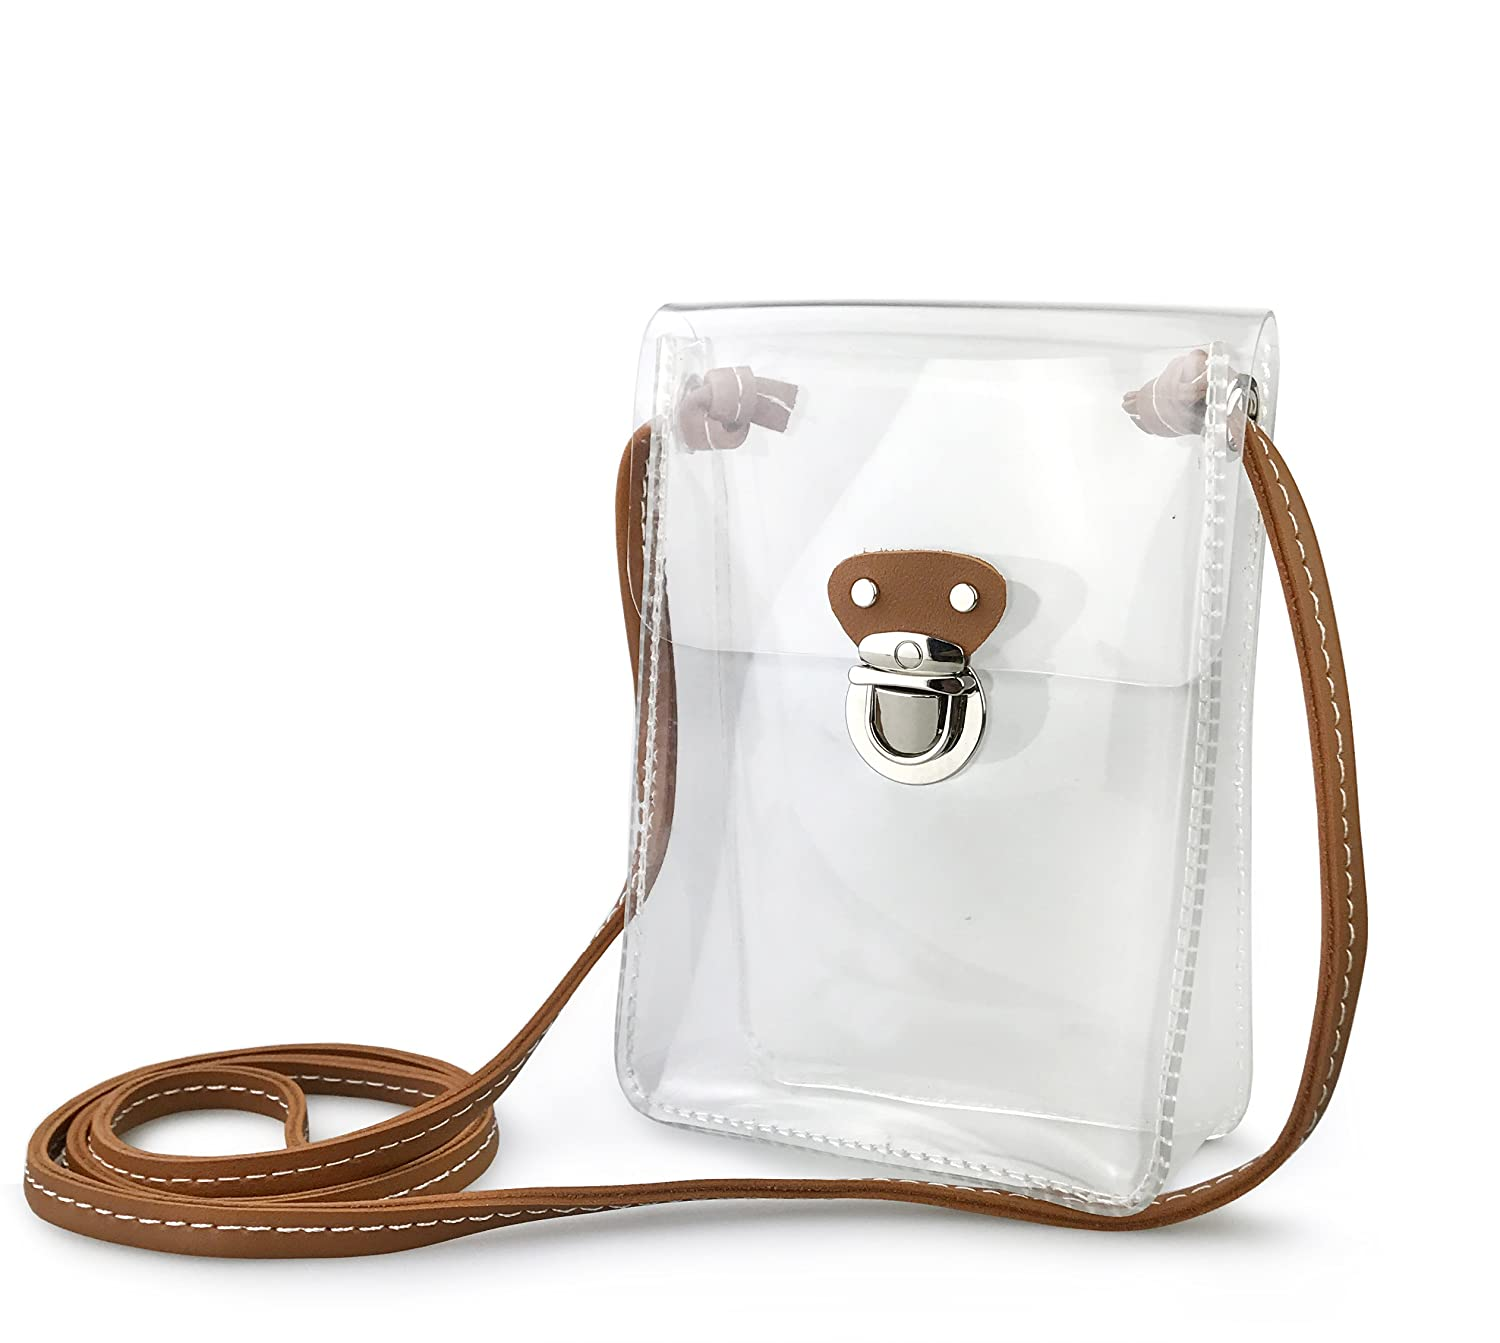 0329f6a2cd5 Clear Mini Cross Body Single Shoulder Bag for Stadium Approved (Clear)   Handbags  Amazon.com